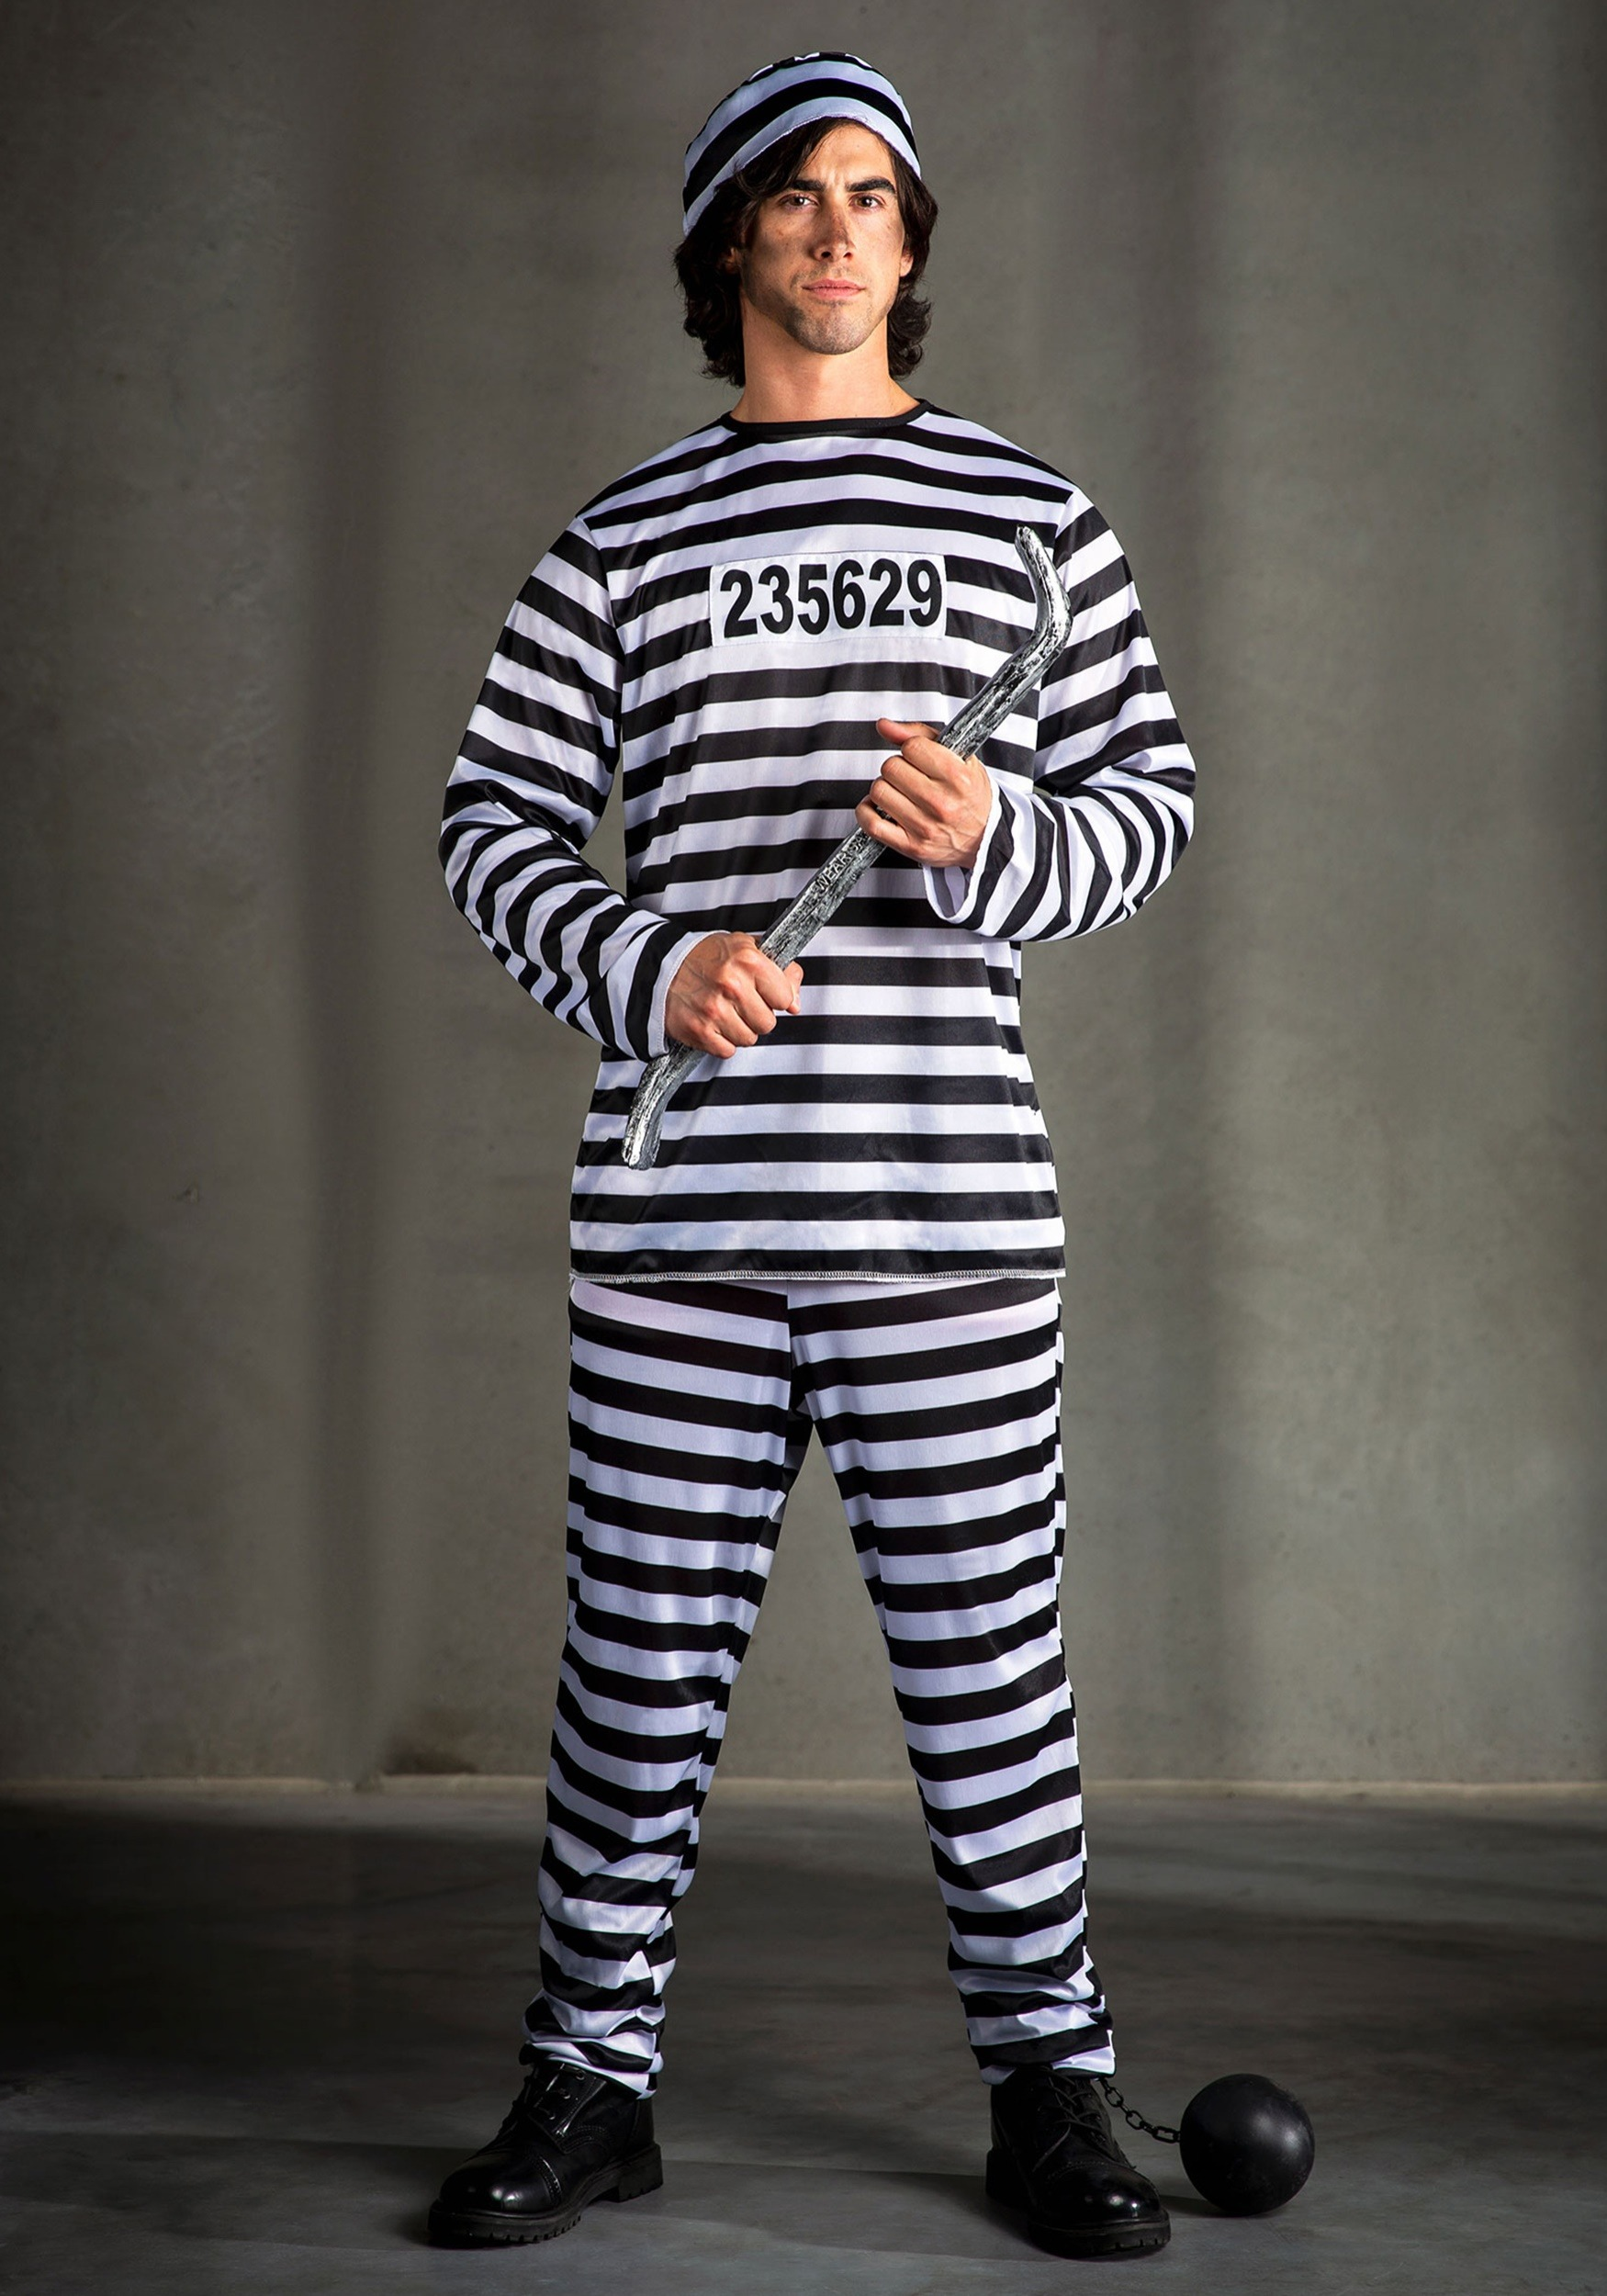 Plus Size Mens Prisoner Costume  sc 1 st  Halloween Costumes & Plus Size Menu0027s Prisoner Costume 2X 3X 4X 5X 6X 7X 8X